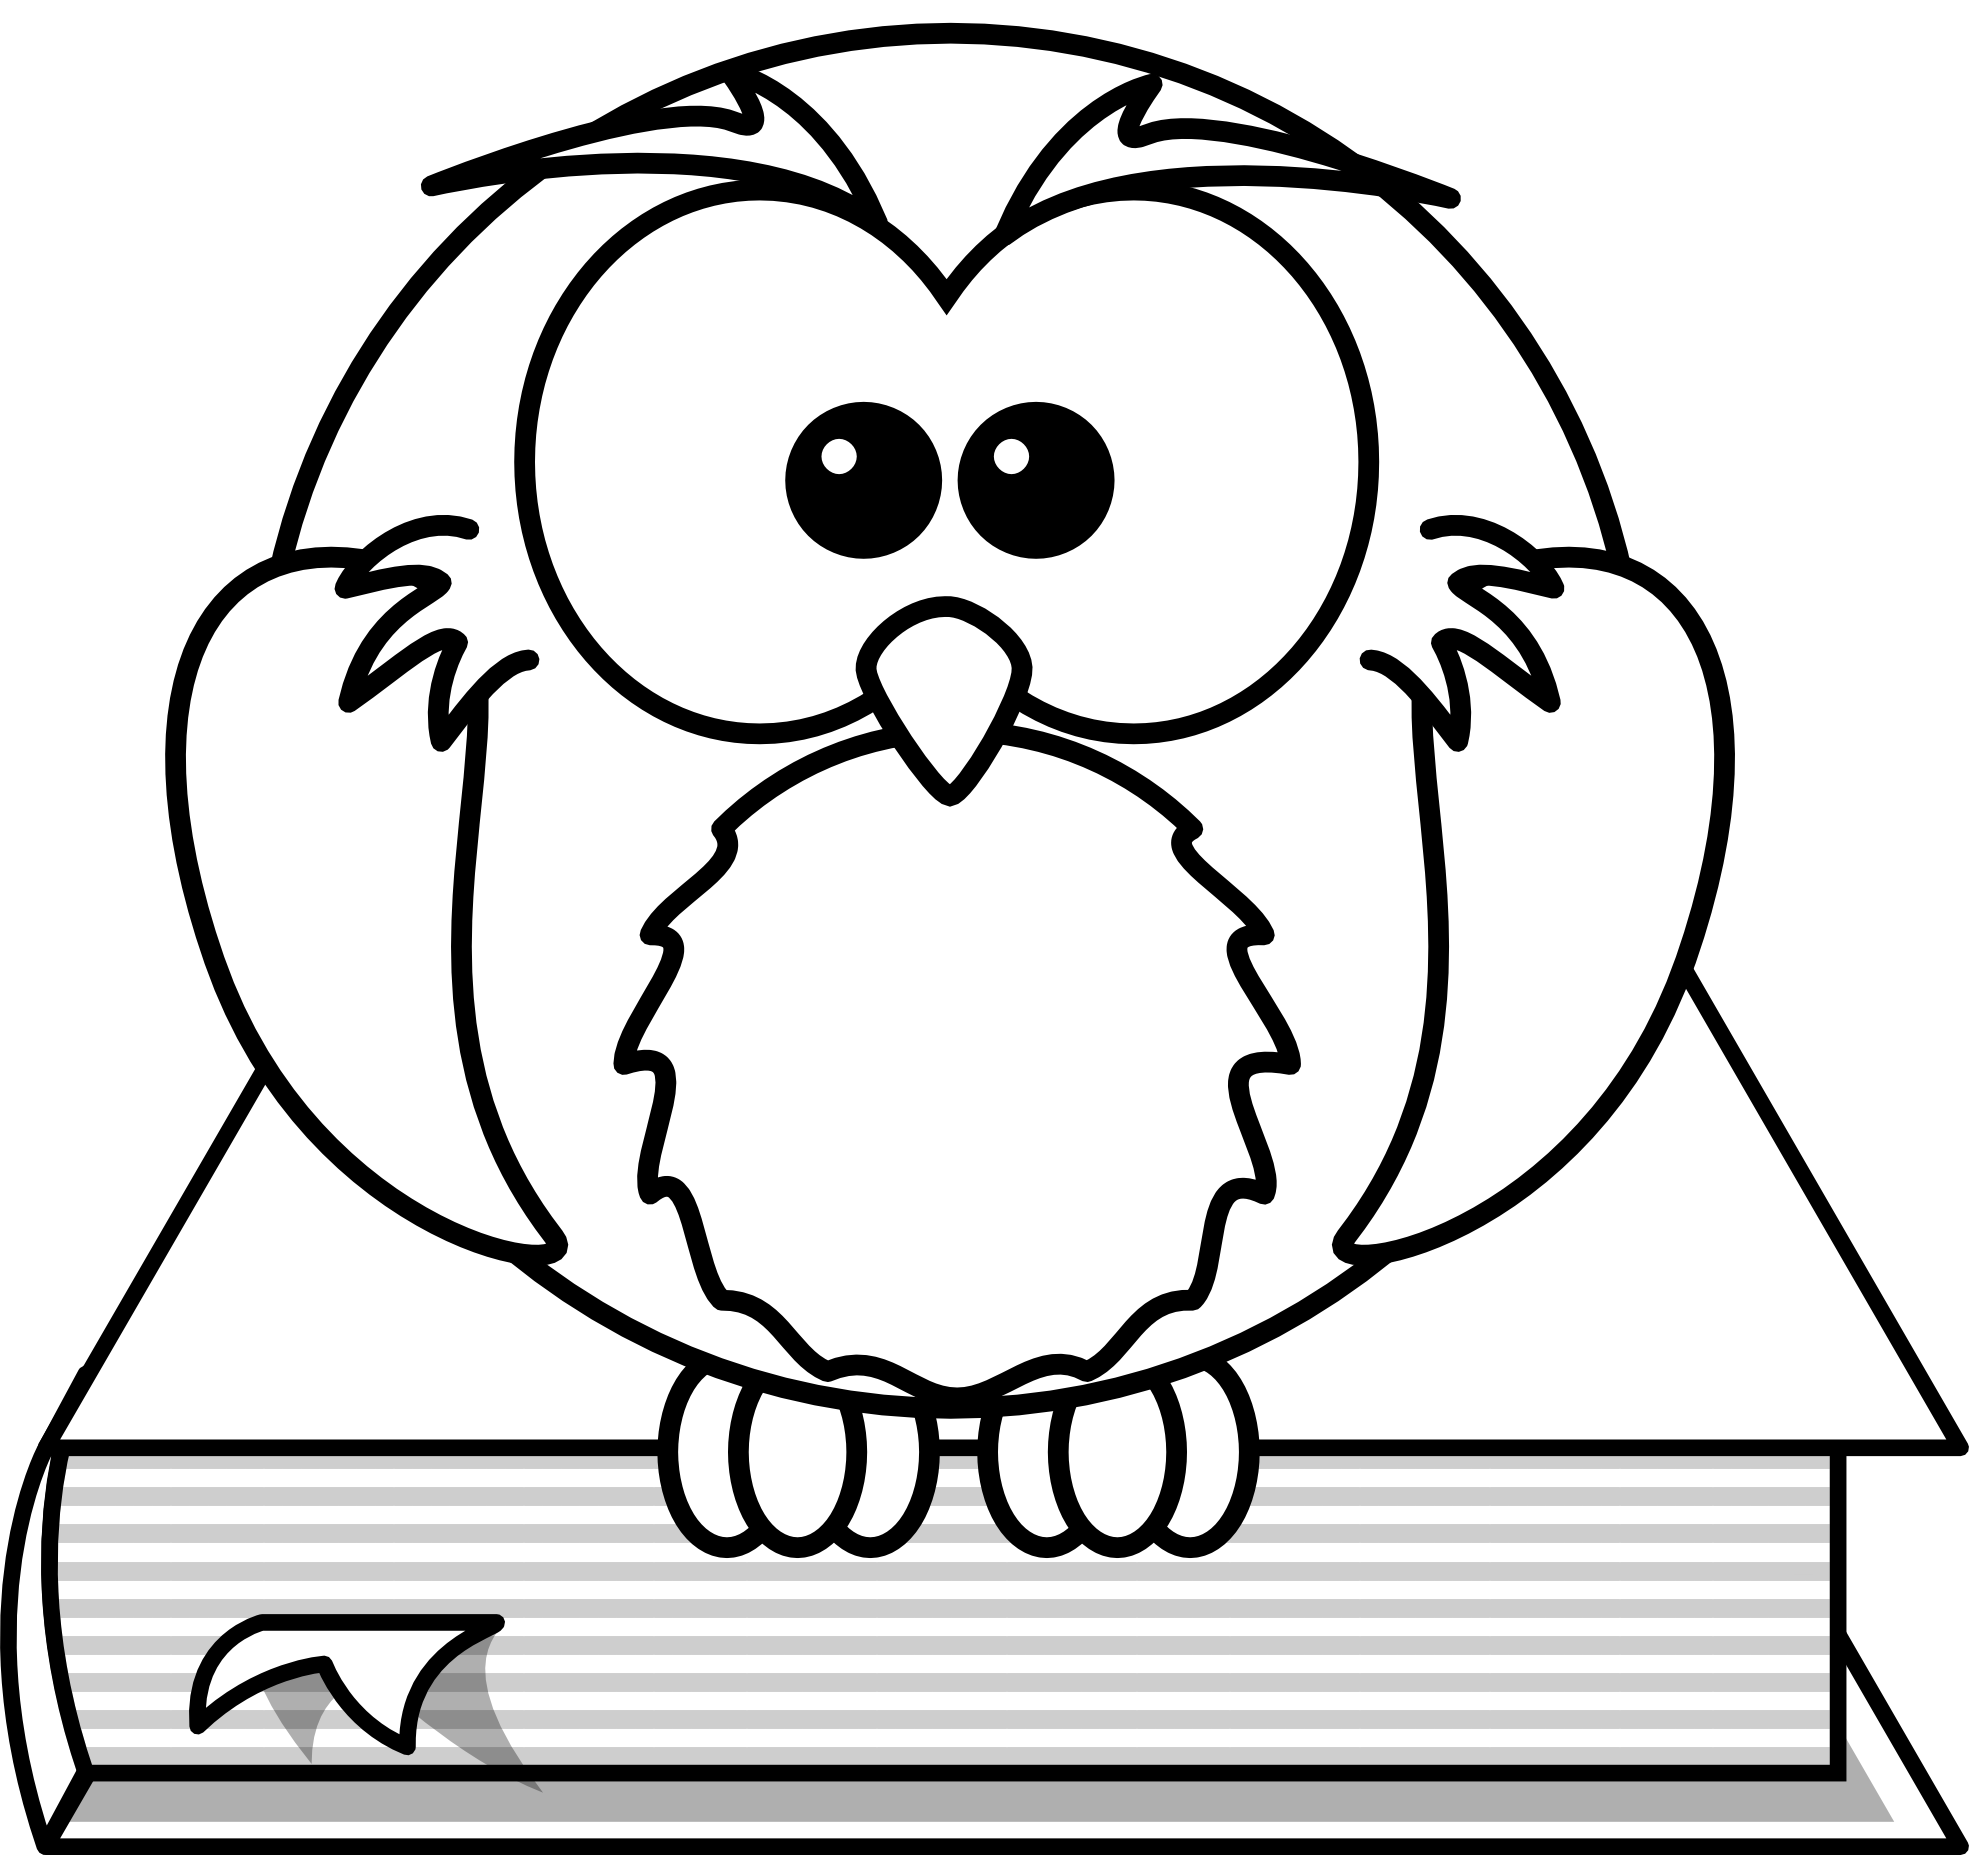 Owl black and white. Lightning clipart coloring page